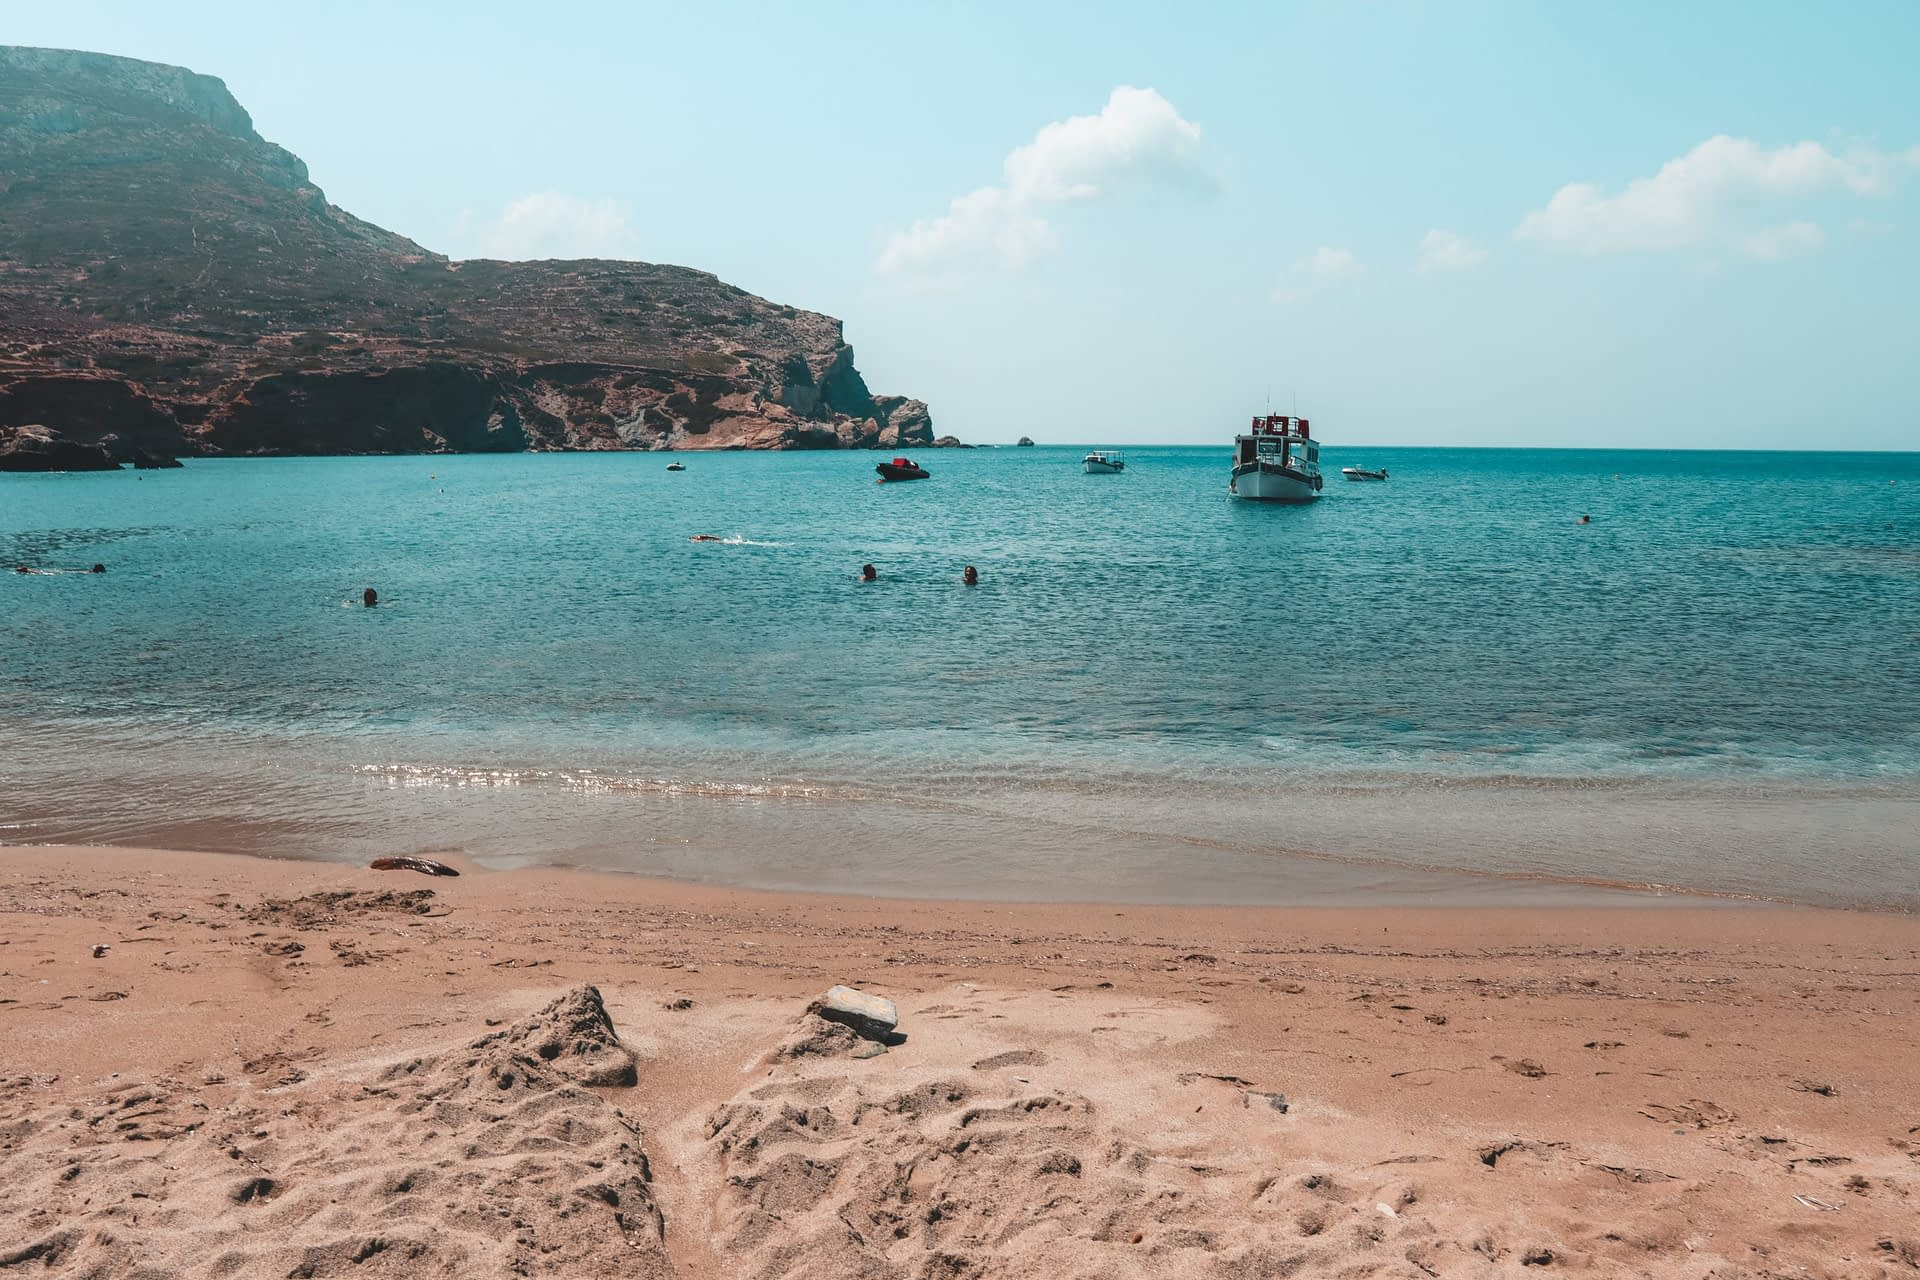 Agali beach with turquoise waters and a boat. Best beaches in Folegandros